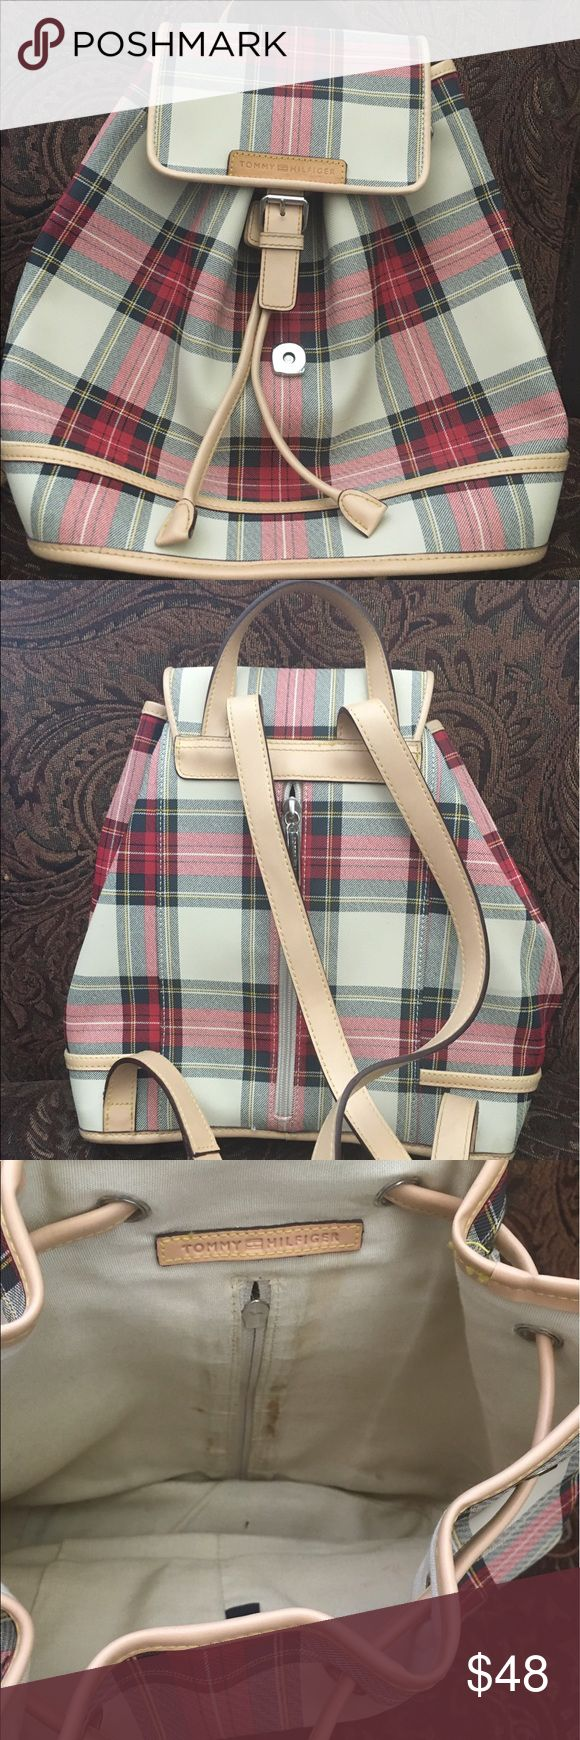 🍰1 DAY SALE Tommy Hilfiger mini backpack Gorgeous Tommy Hilfiger mini backpack. Some stains on the inside & light marks on the exterior. Tommy Hilfiger Bags Backpacks